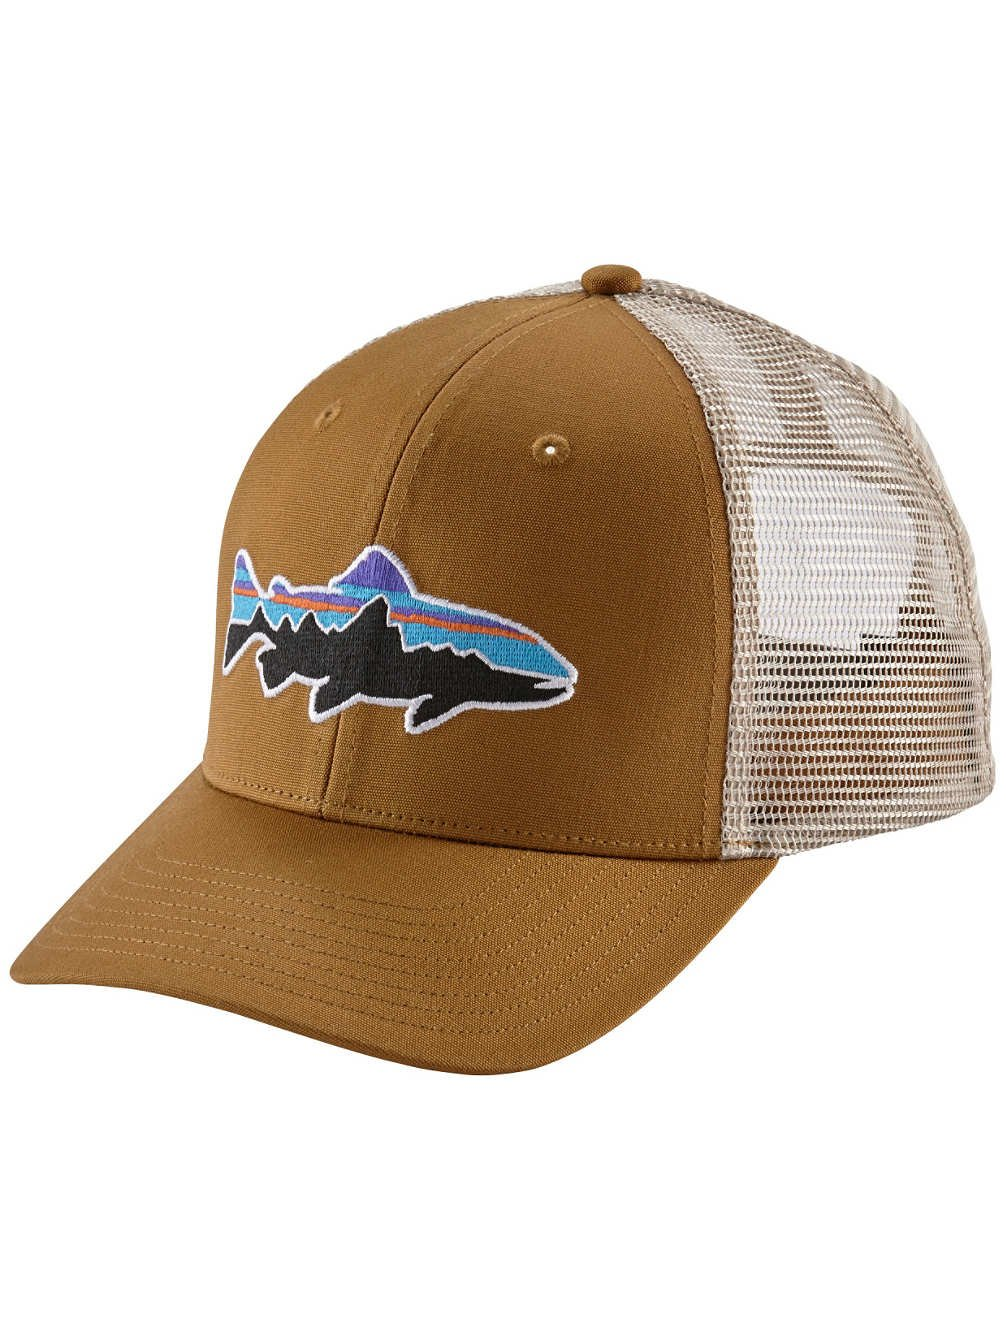 Patagonia Fitz Roy Trout Trucker Hat B01N152CK7 ALL|Bear Brown Bear Brown ALL